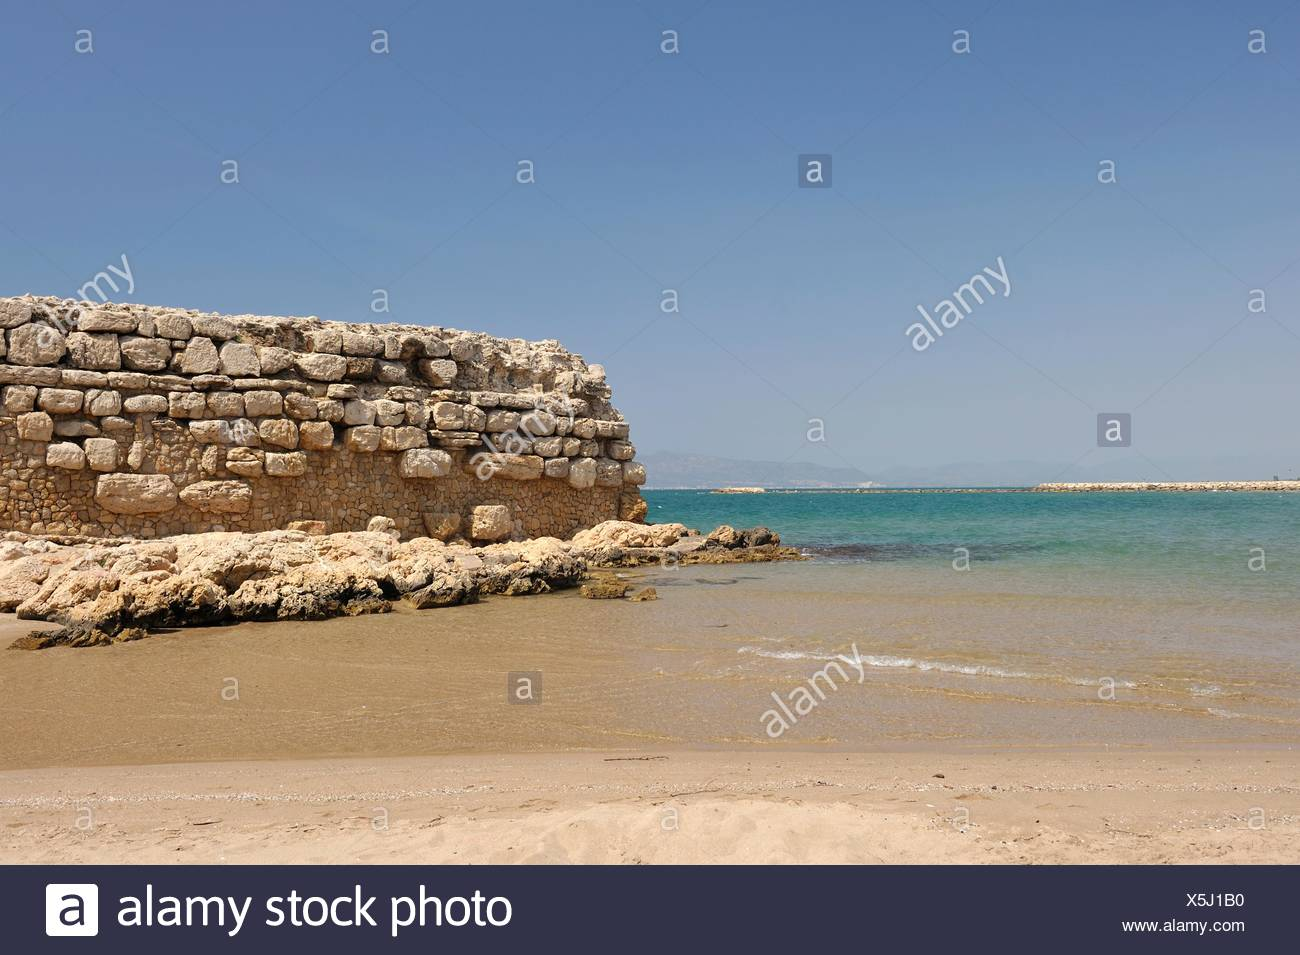 ancient jetty ruins from the Hellenistic period, beach of Sant Marti d´Empuries Costa Brava, Catalonia, Spain, Europe - Stock Image